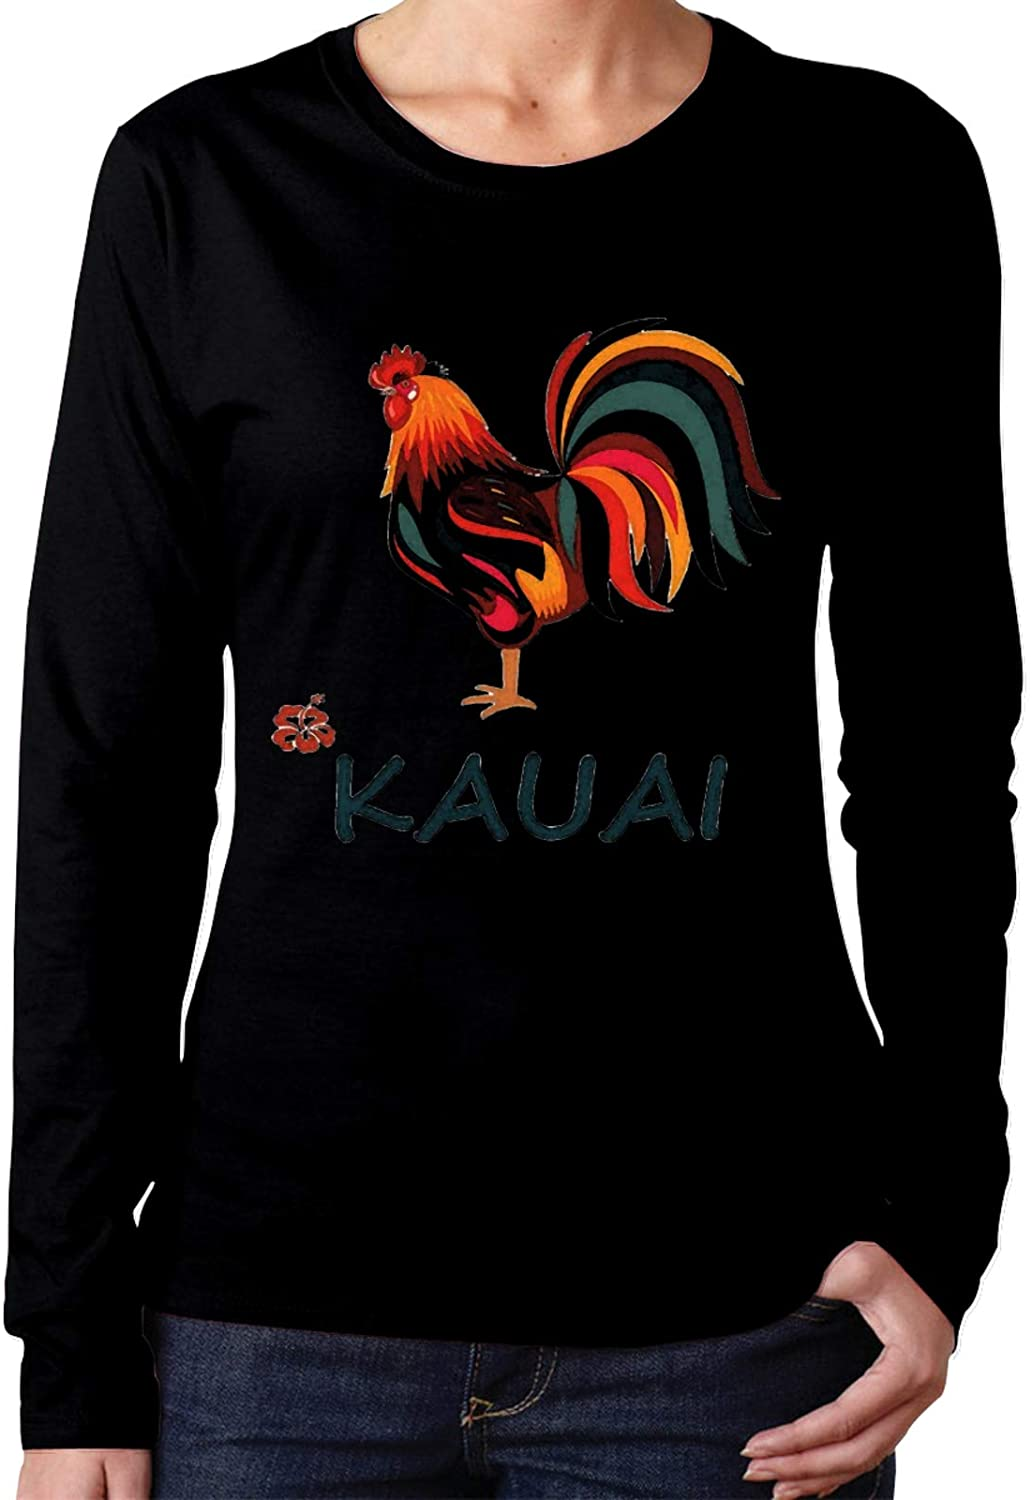 HIPGCC Kauai Wild Rooster Long Sleeve Shirts for Women Classic Black t Shirt